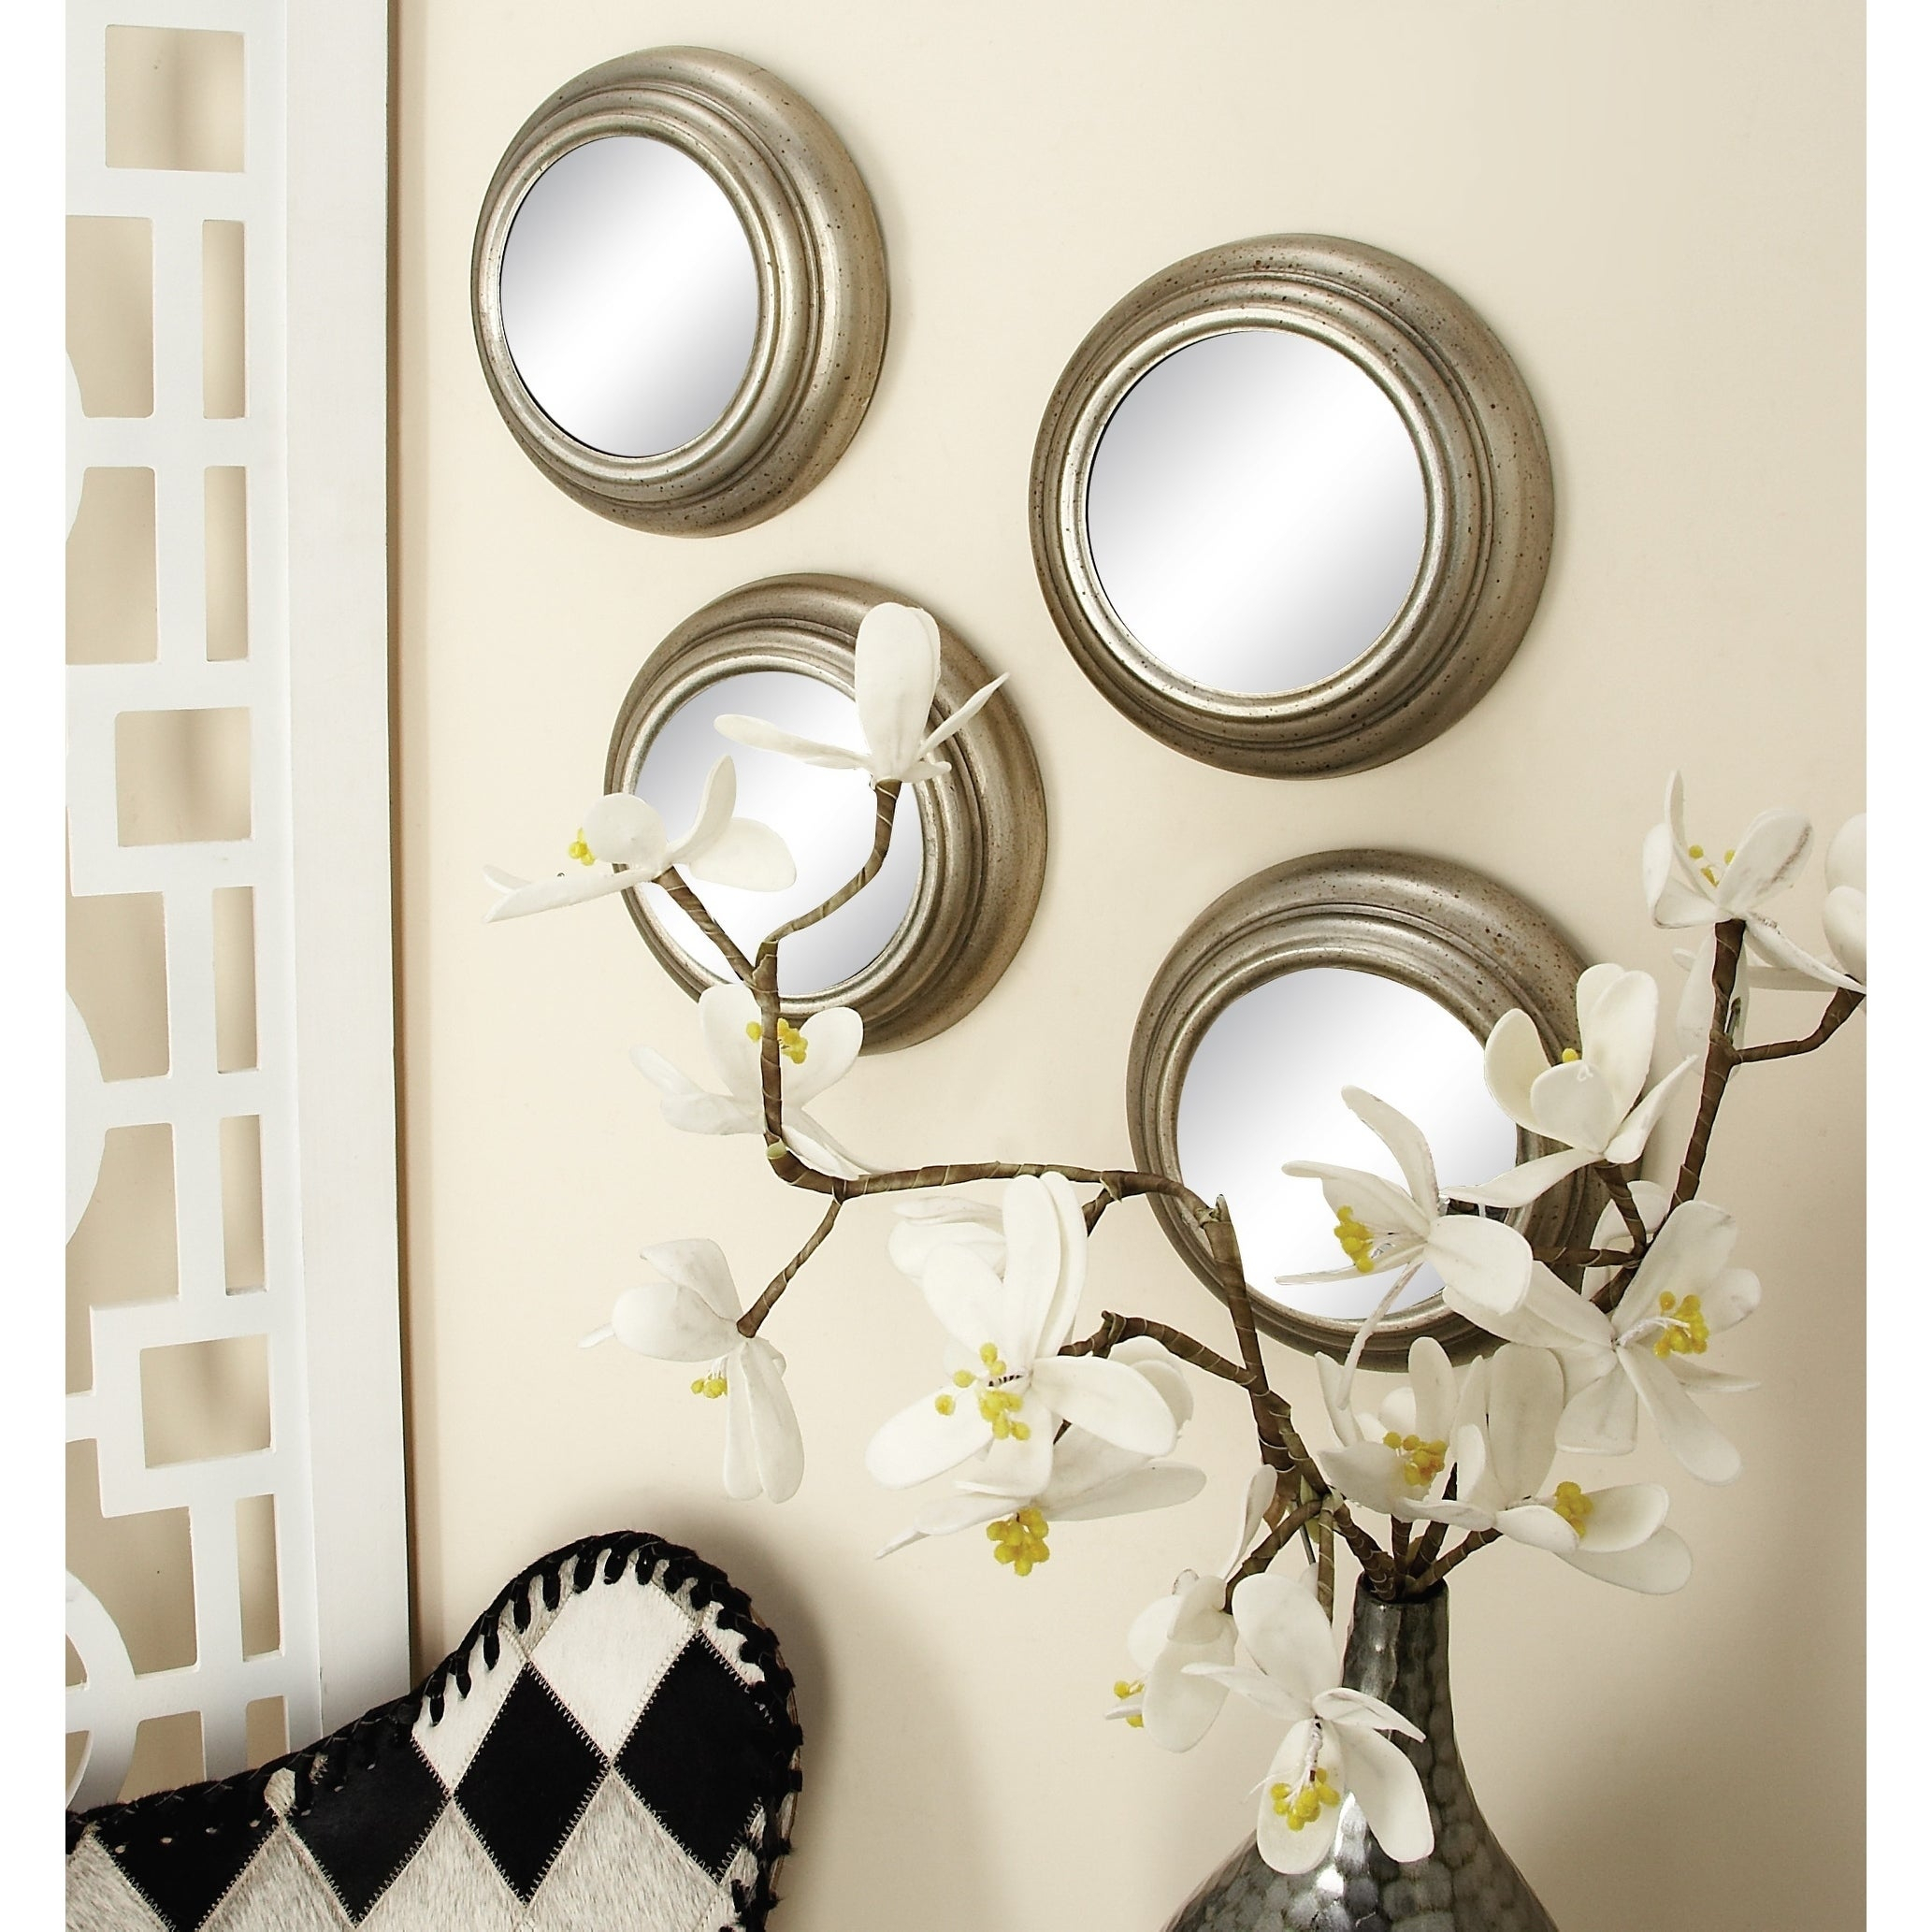 Set Of 12 Contemporary Round Decorative Wall Mirrorsstudio 350 – Silver Inside Wall Mirrors (Image 18 of 20)